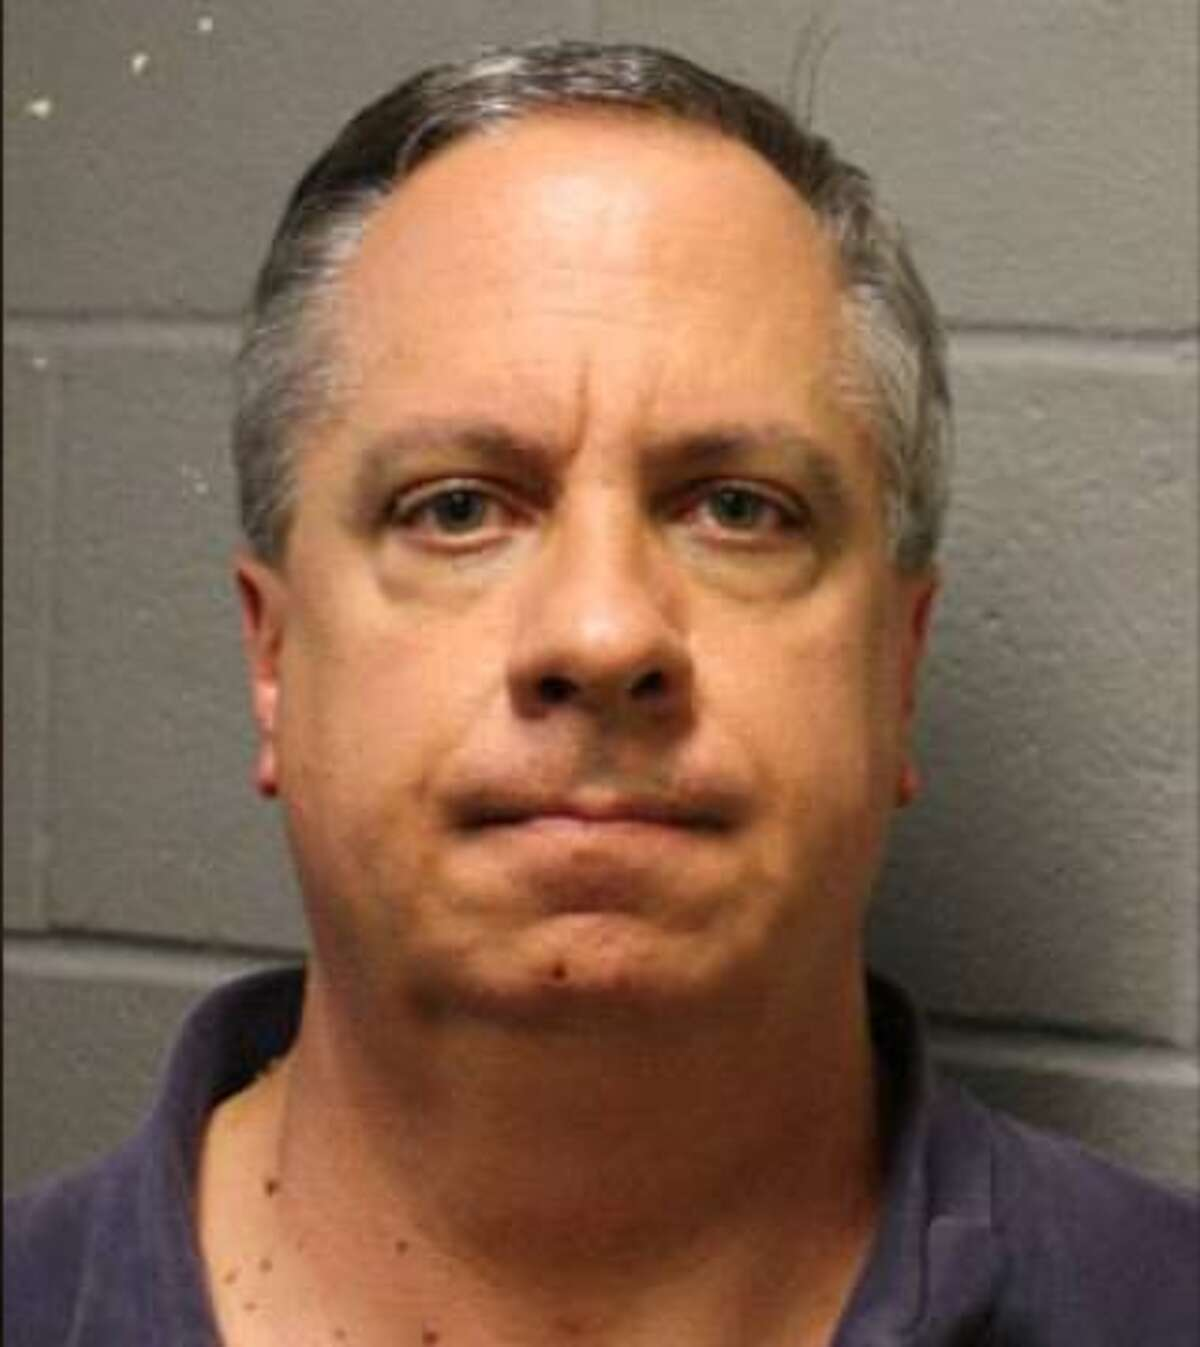 A booking photo of Gregory Wayne Lueb, 56, at the Harris County Jail on April 5, 2018. Lueb, a former top ranking employee of the Harris County Treasurer's Office, is charged with felony theft.